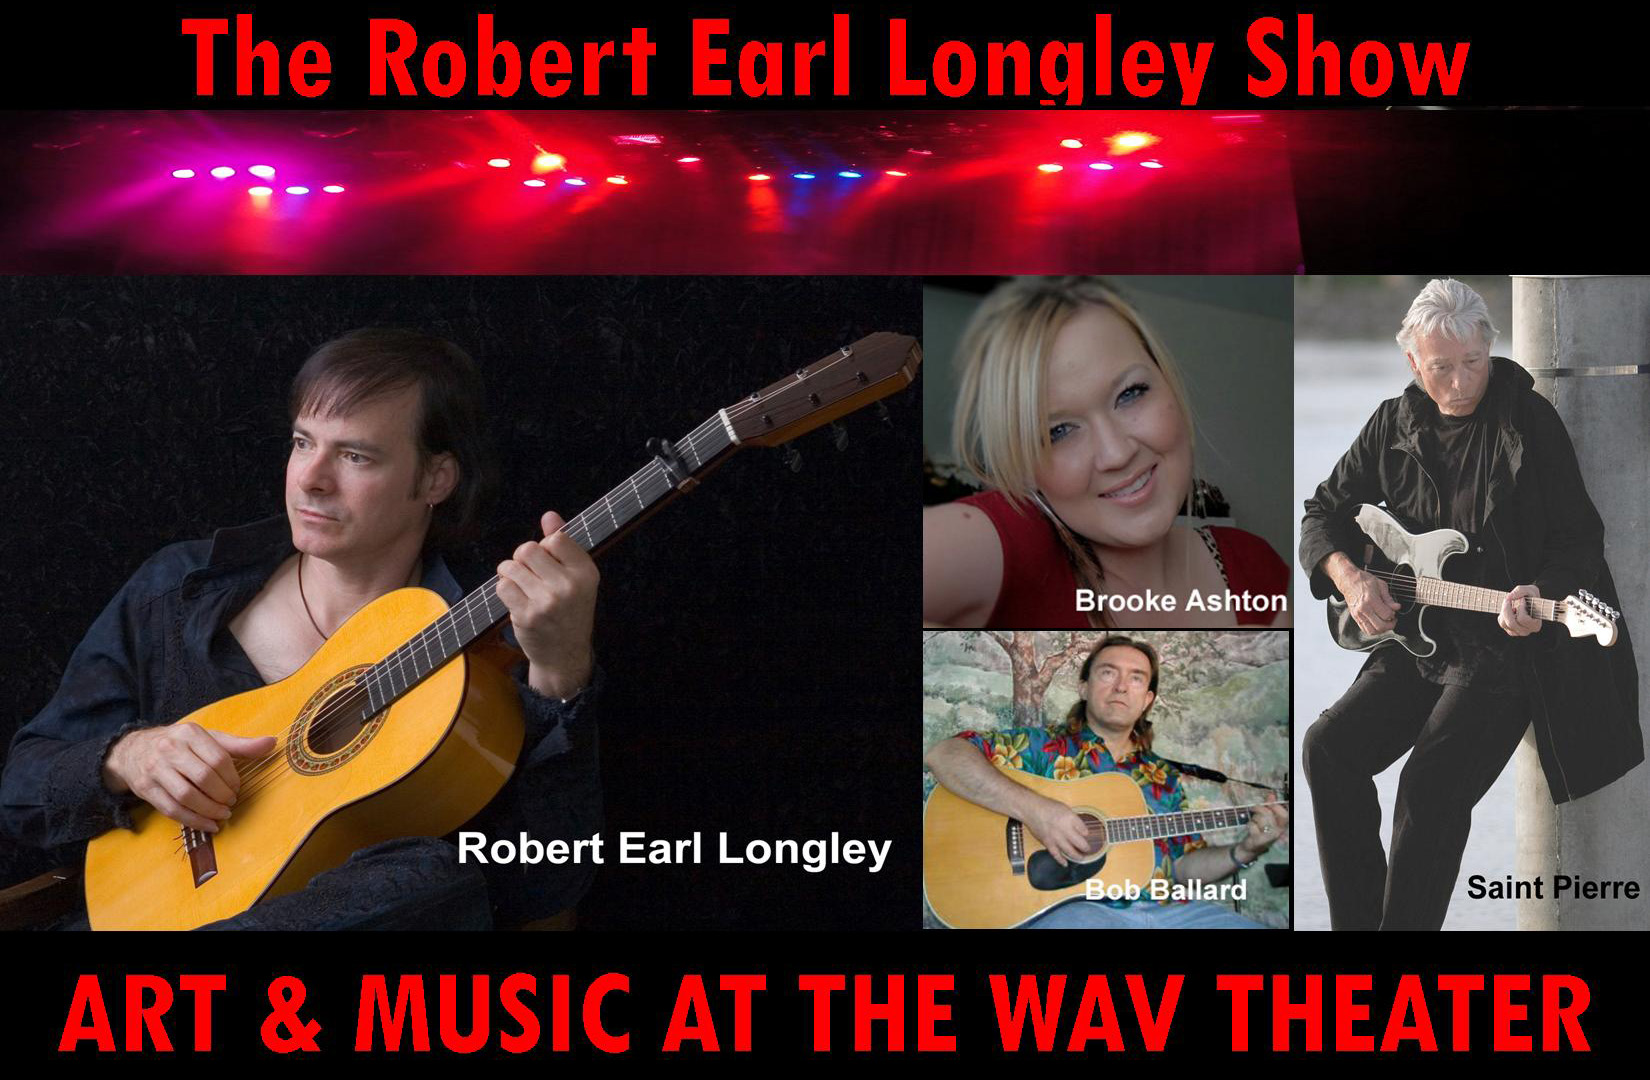 The Classical Masters Show starring Robert Earl Longley, Michael Tine, and The Rockin' Riders